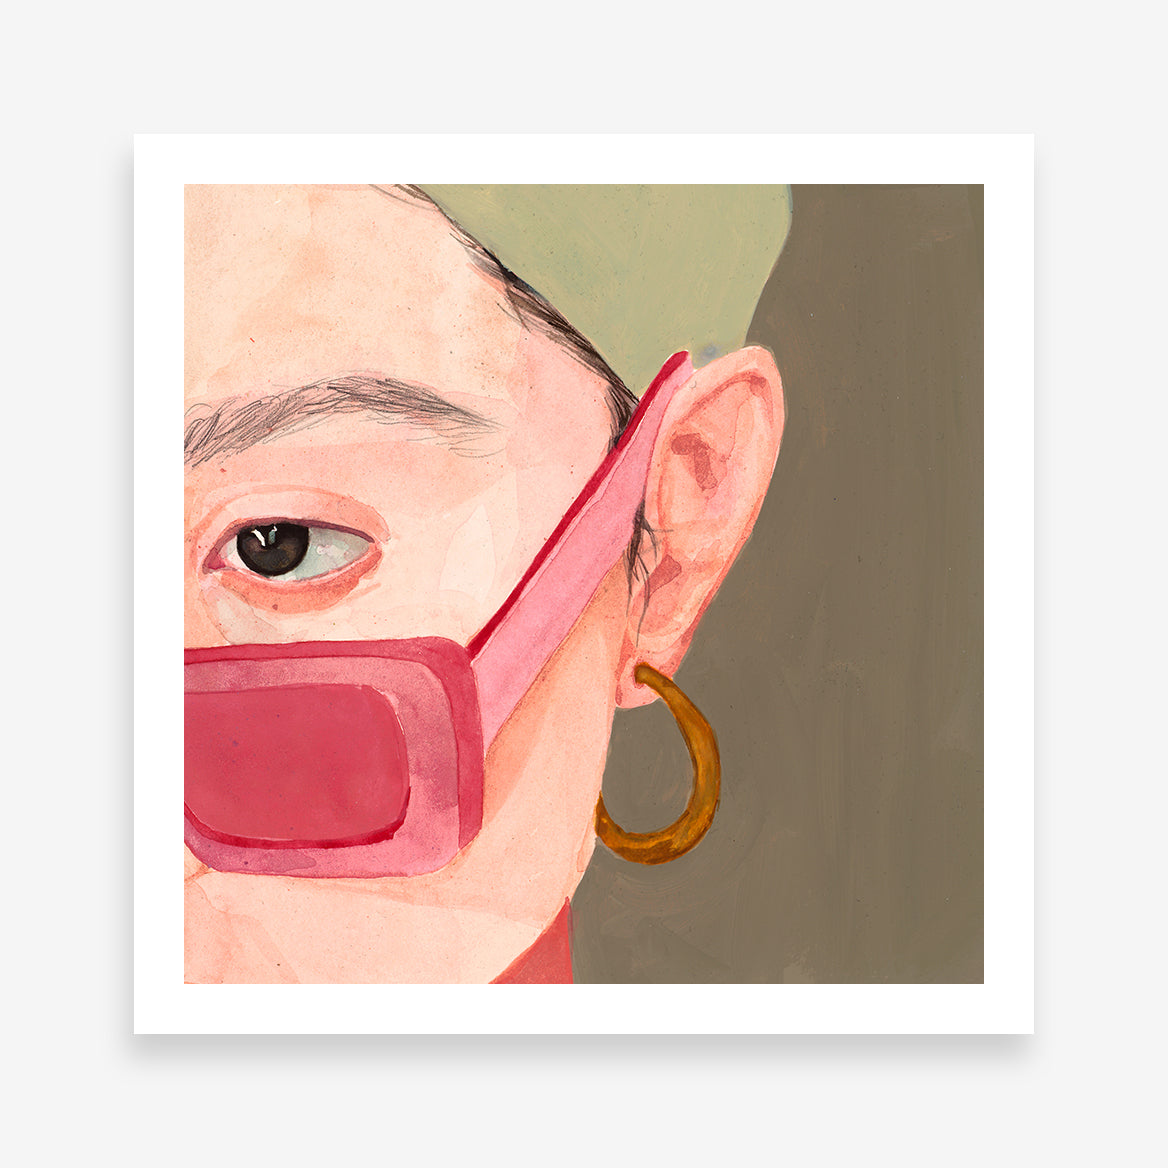 Poster print with woman's half face portrait with pink sunglasses